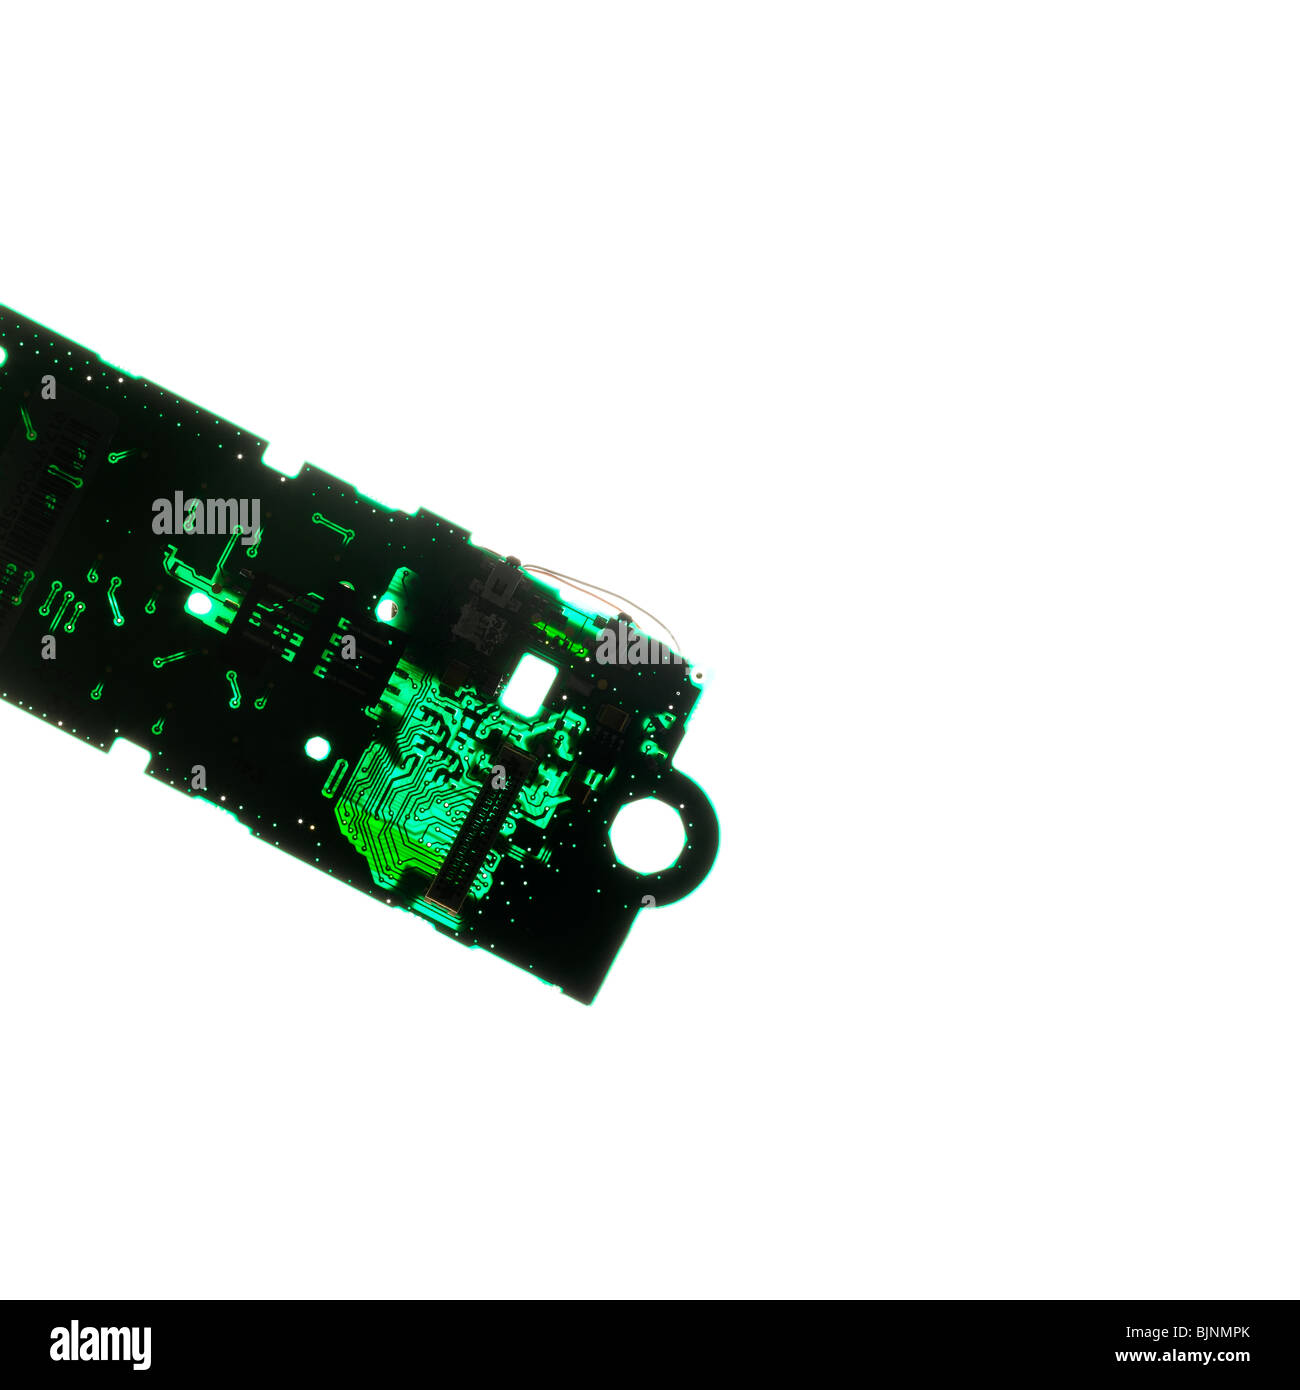 Card, electronic circuit, transparency, technology, green - Stock Image